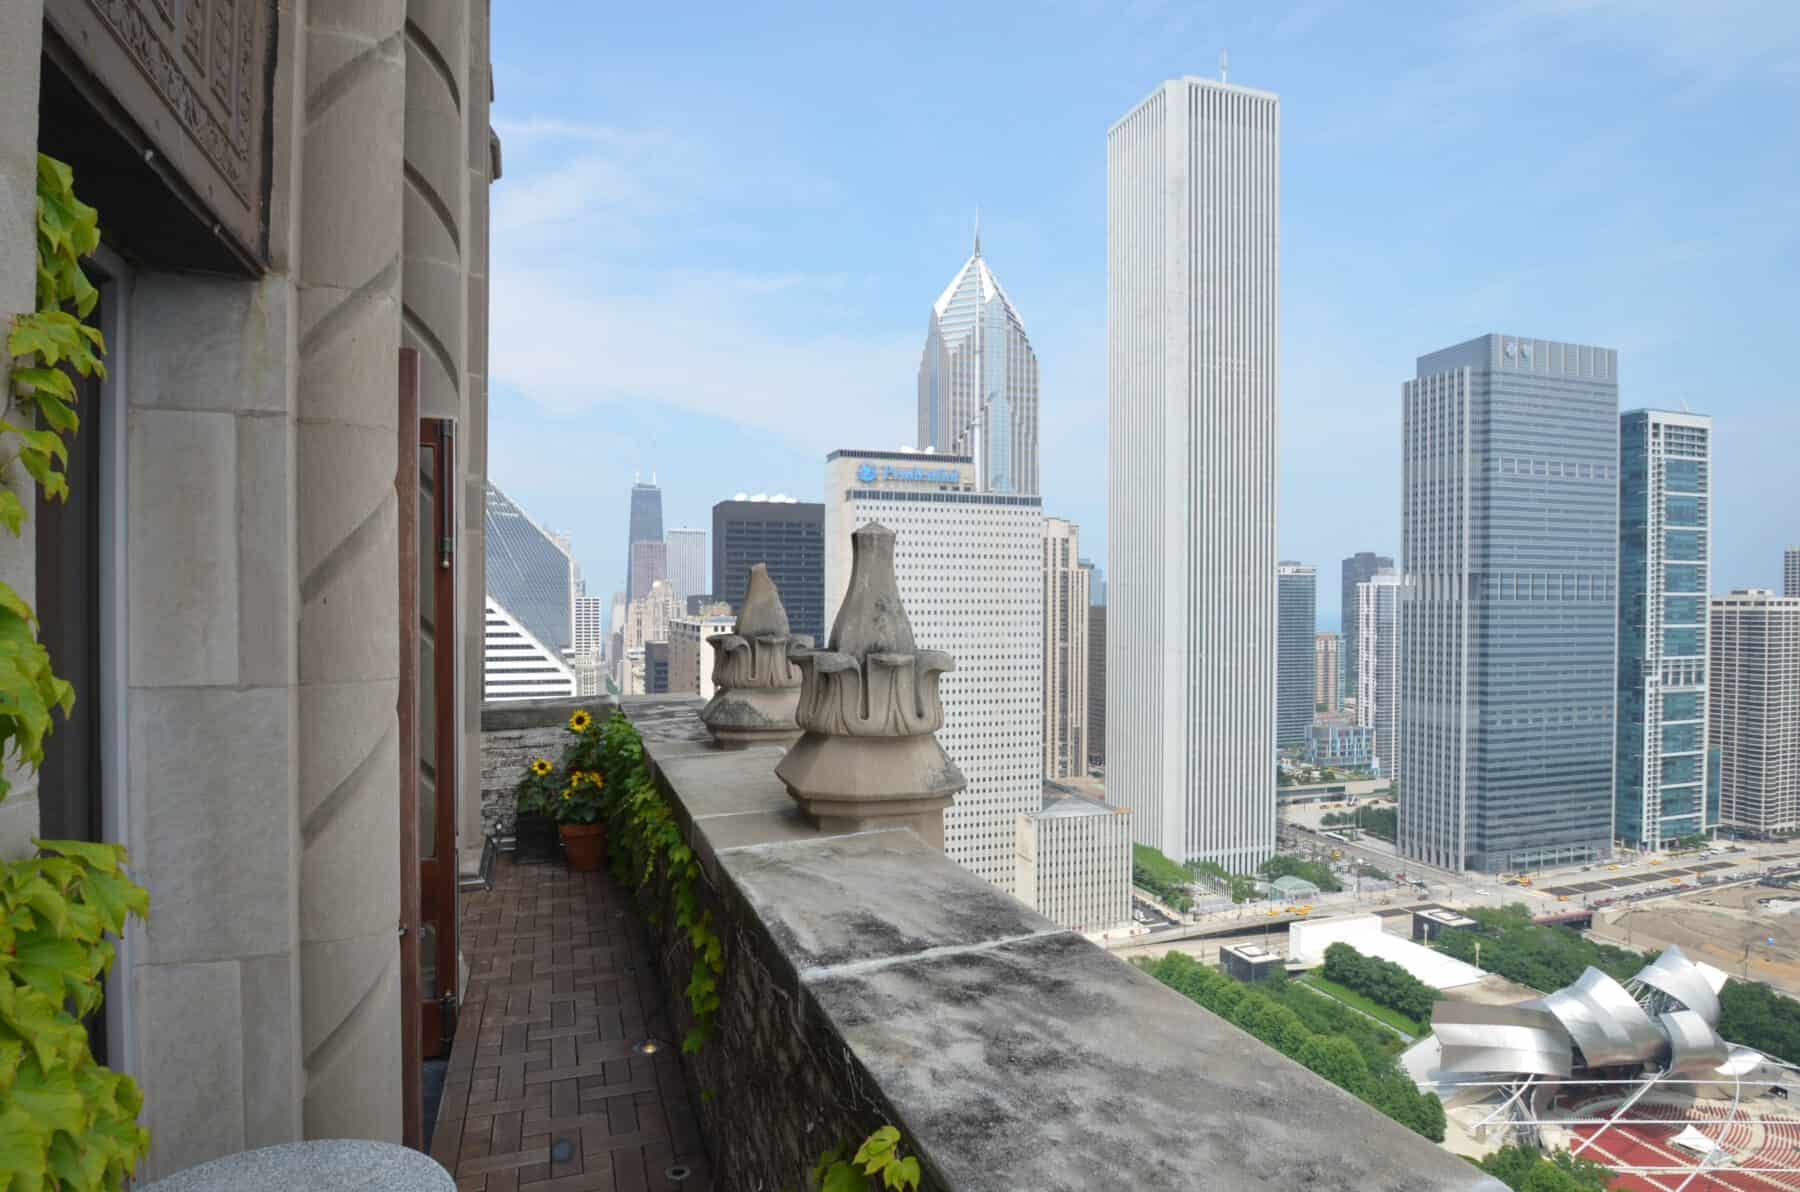 Custom Ipe Deck Patio and Landscape for Michigan Avenue Penthouse Remodel by Commercial Builder & General Contractor Structural Enterprises